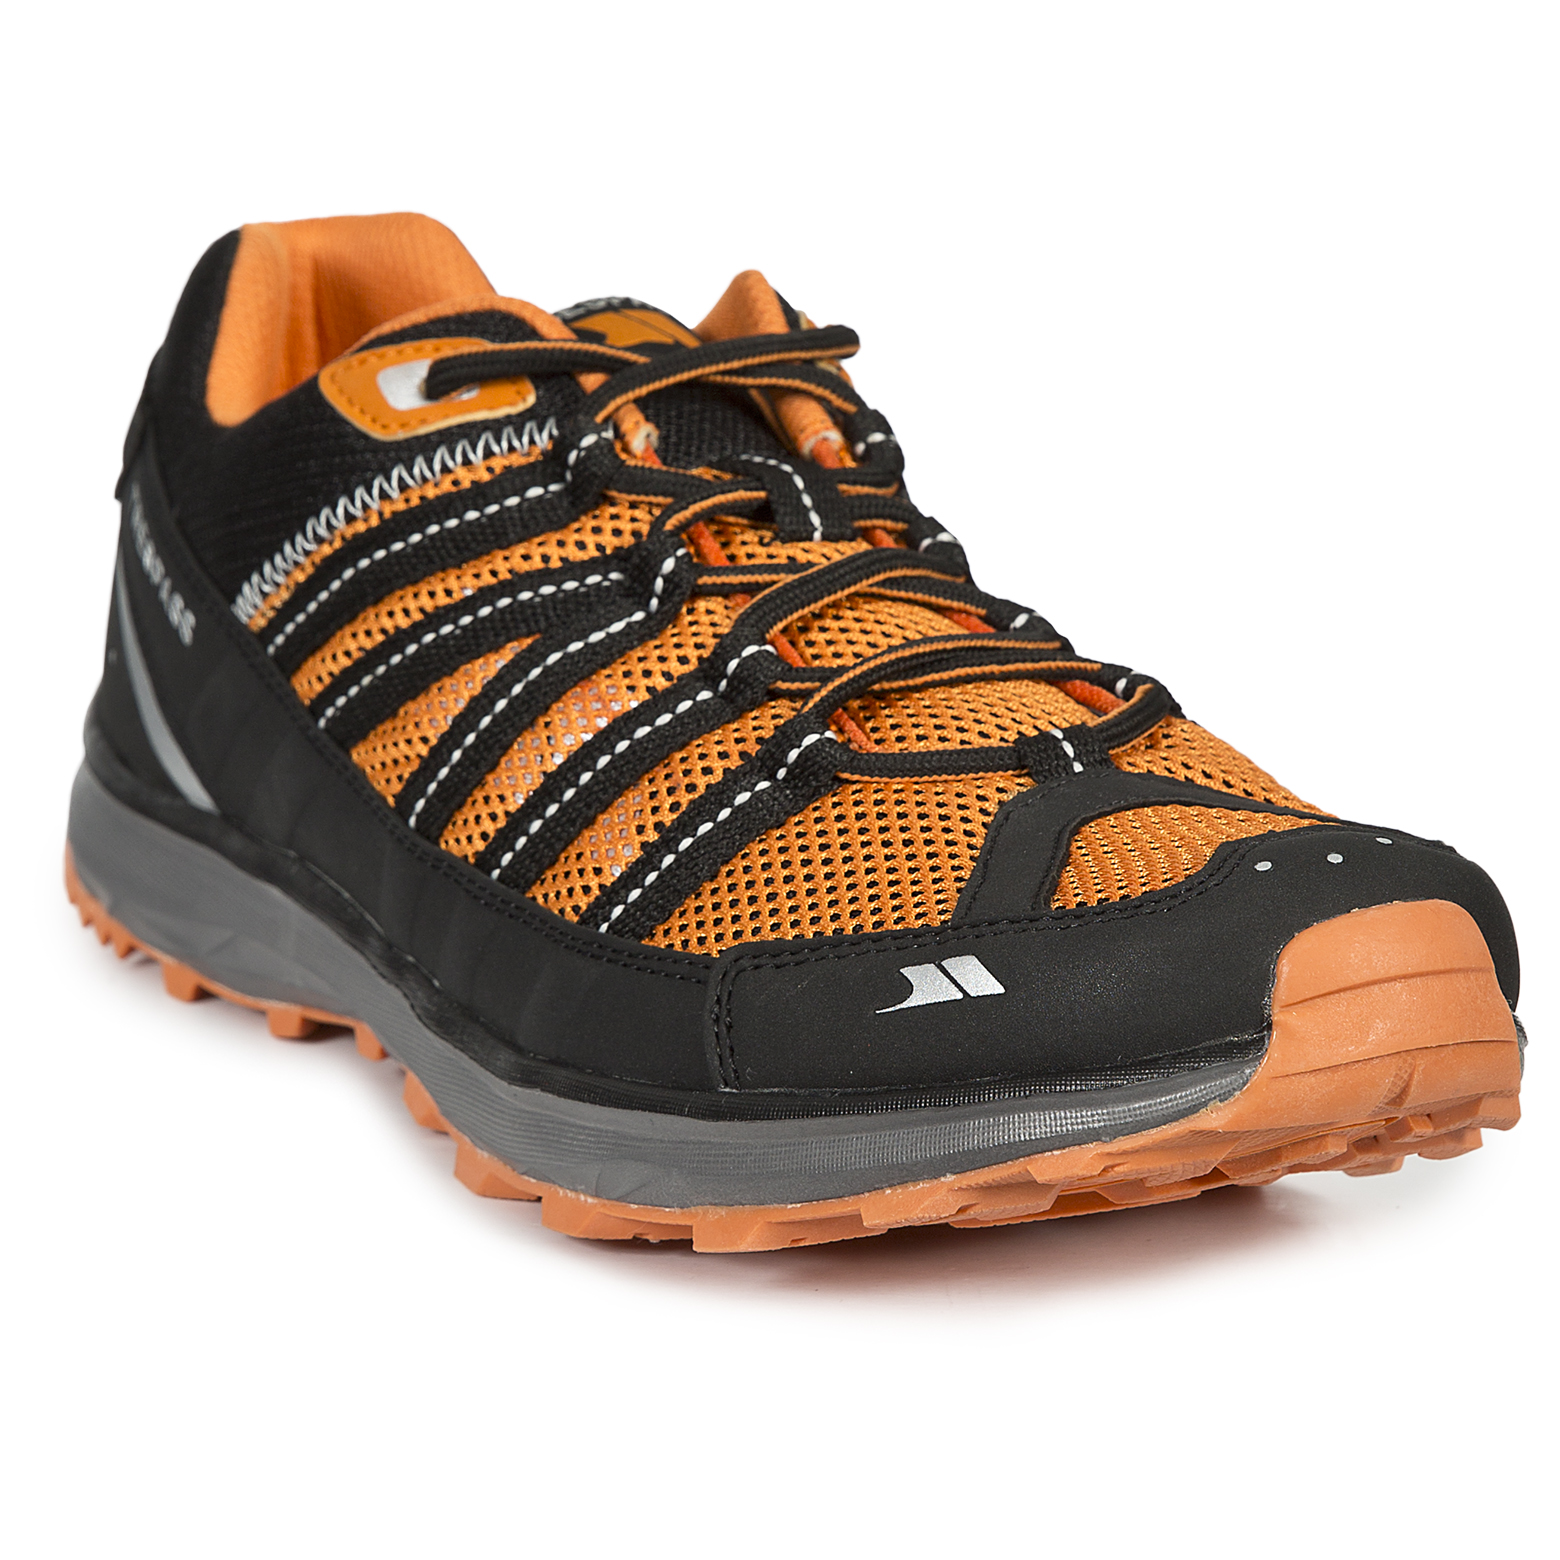 Trespass-Pace-Mens-Active-Trainers-Sports-Lace-Up-Shoes thumbnail 2